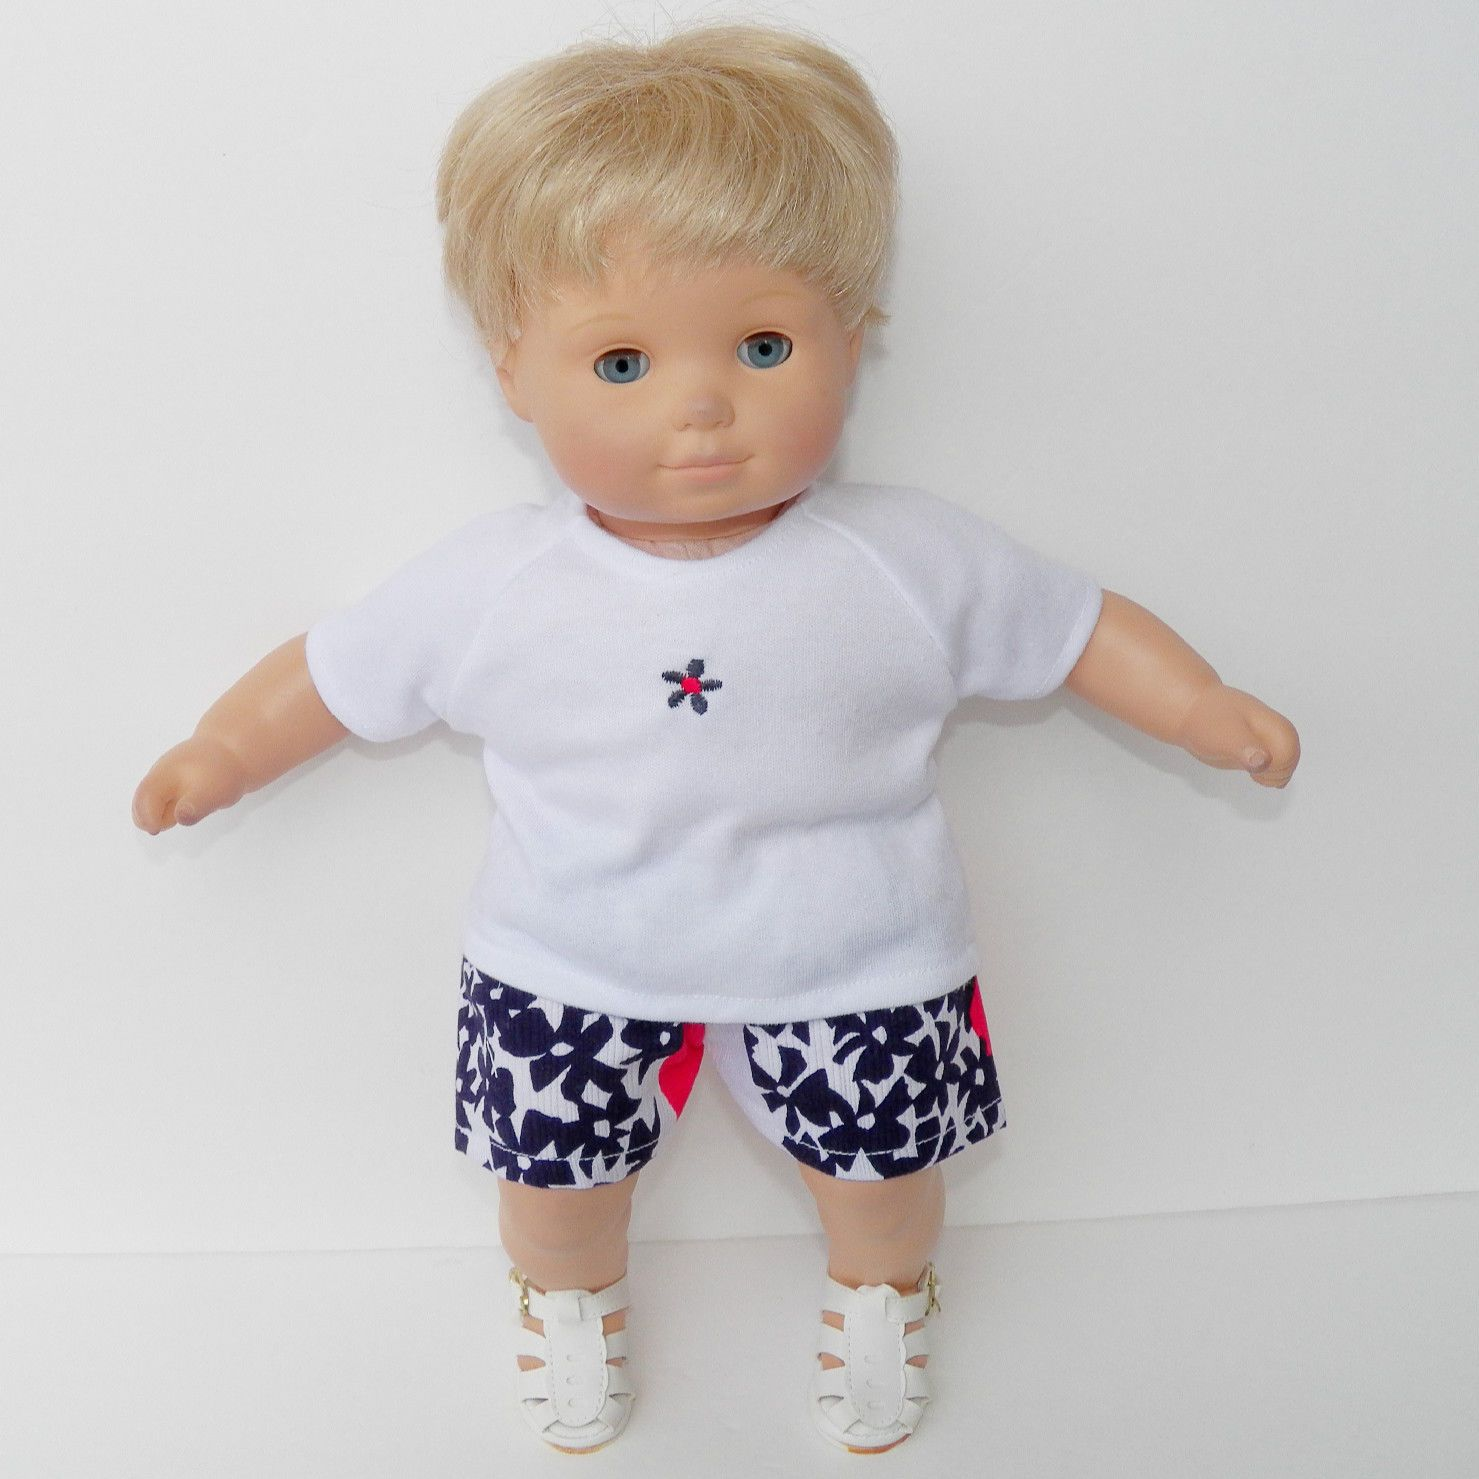 bitty baby clothes doll girl 15 Red White Blue t shirt flower shorts